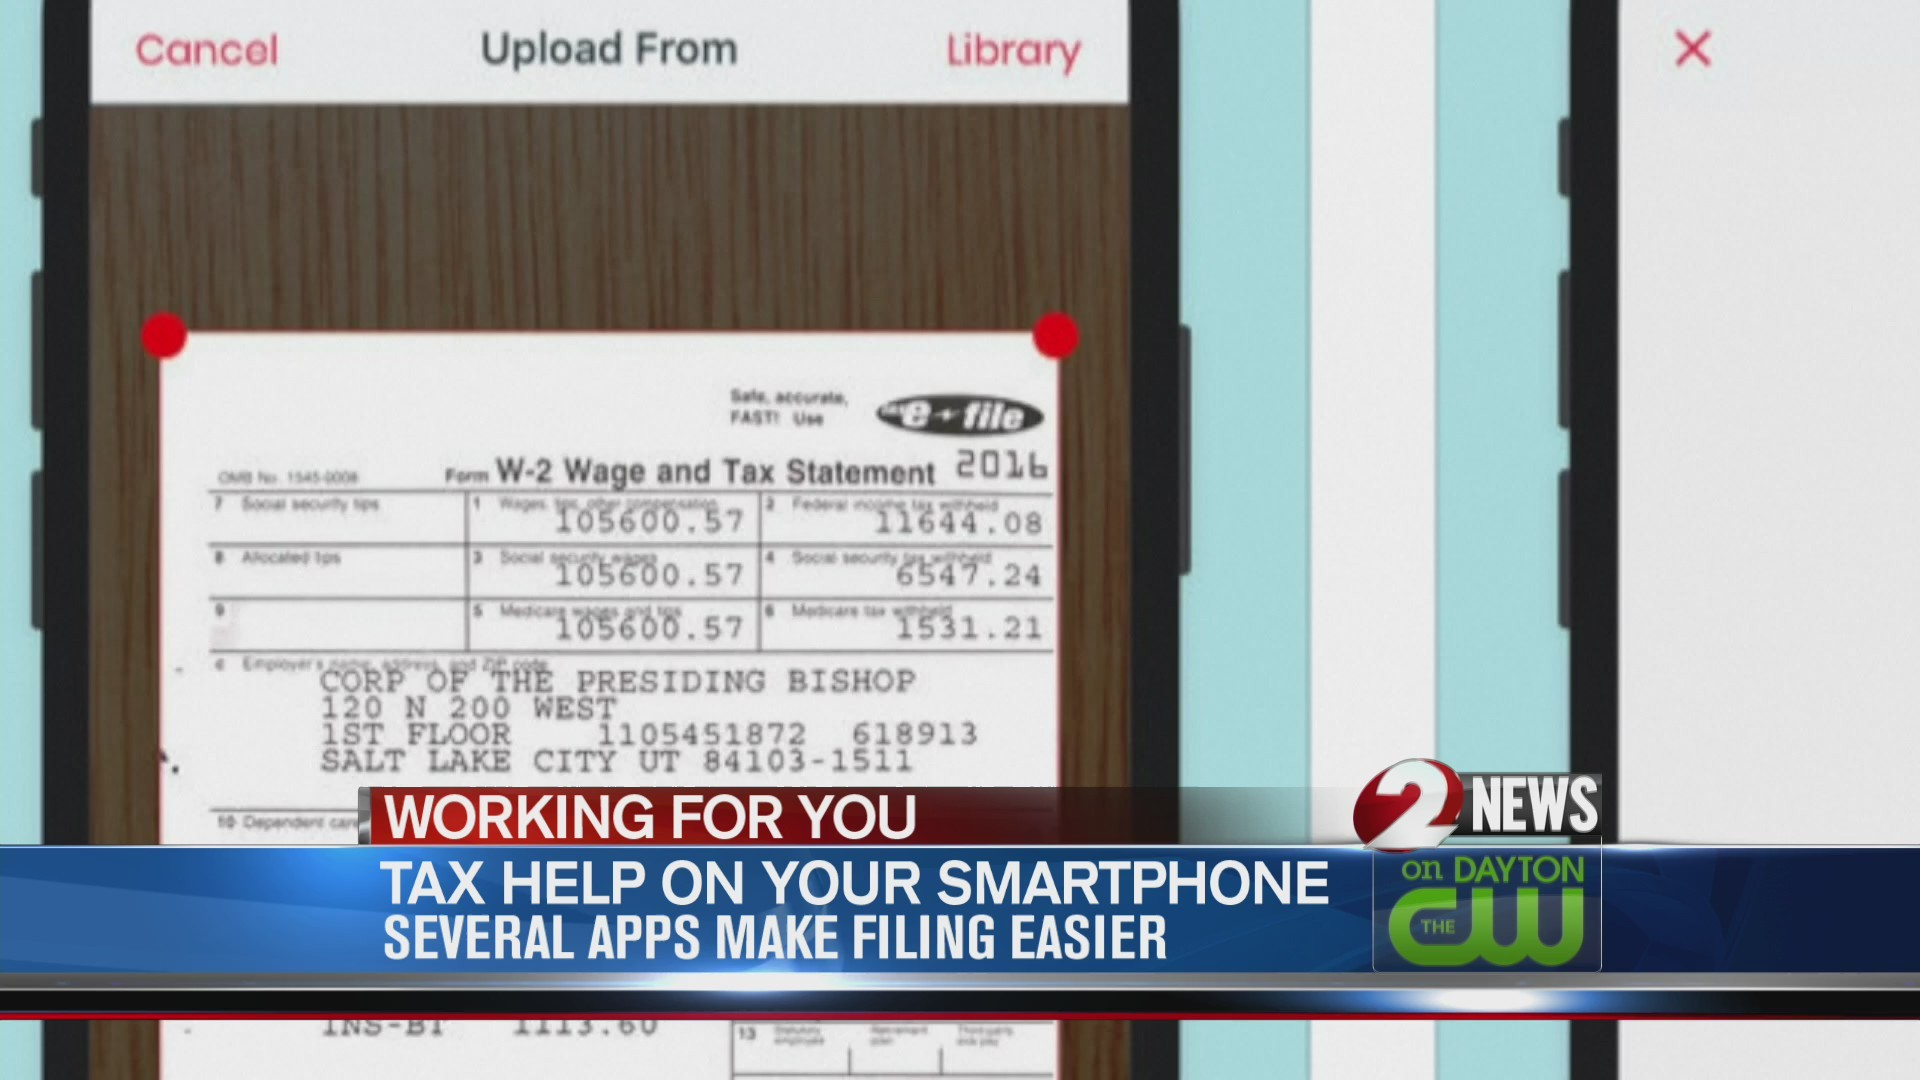 Tax help on your smartphone